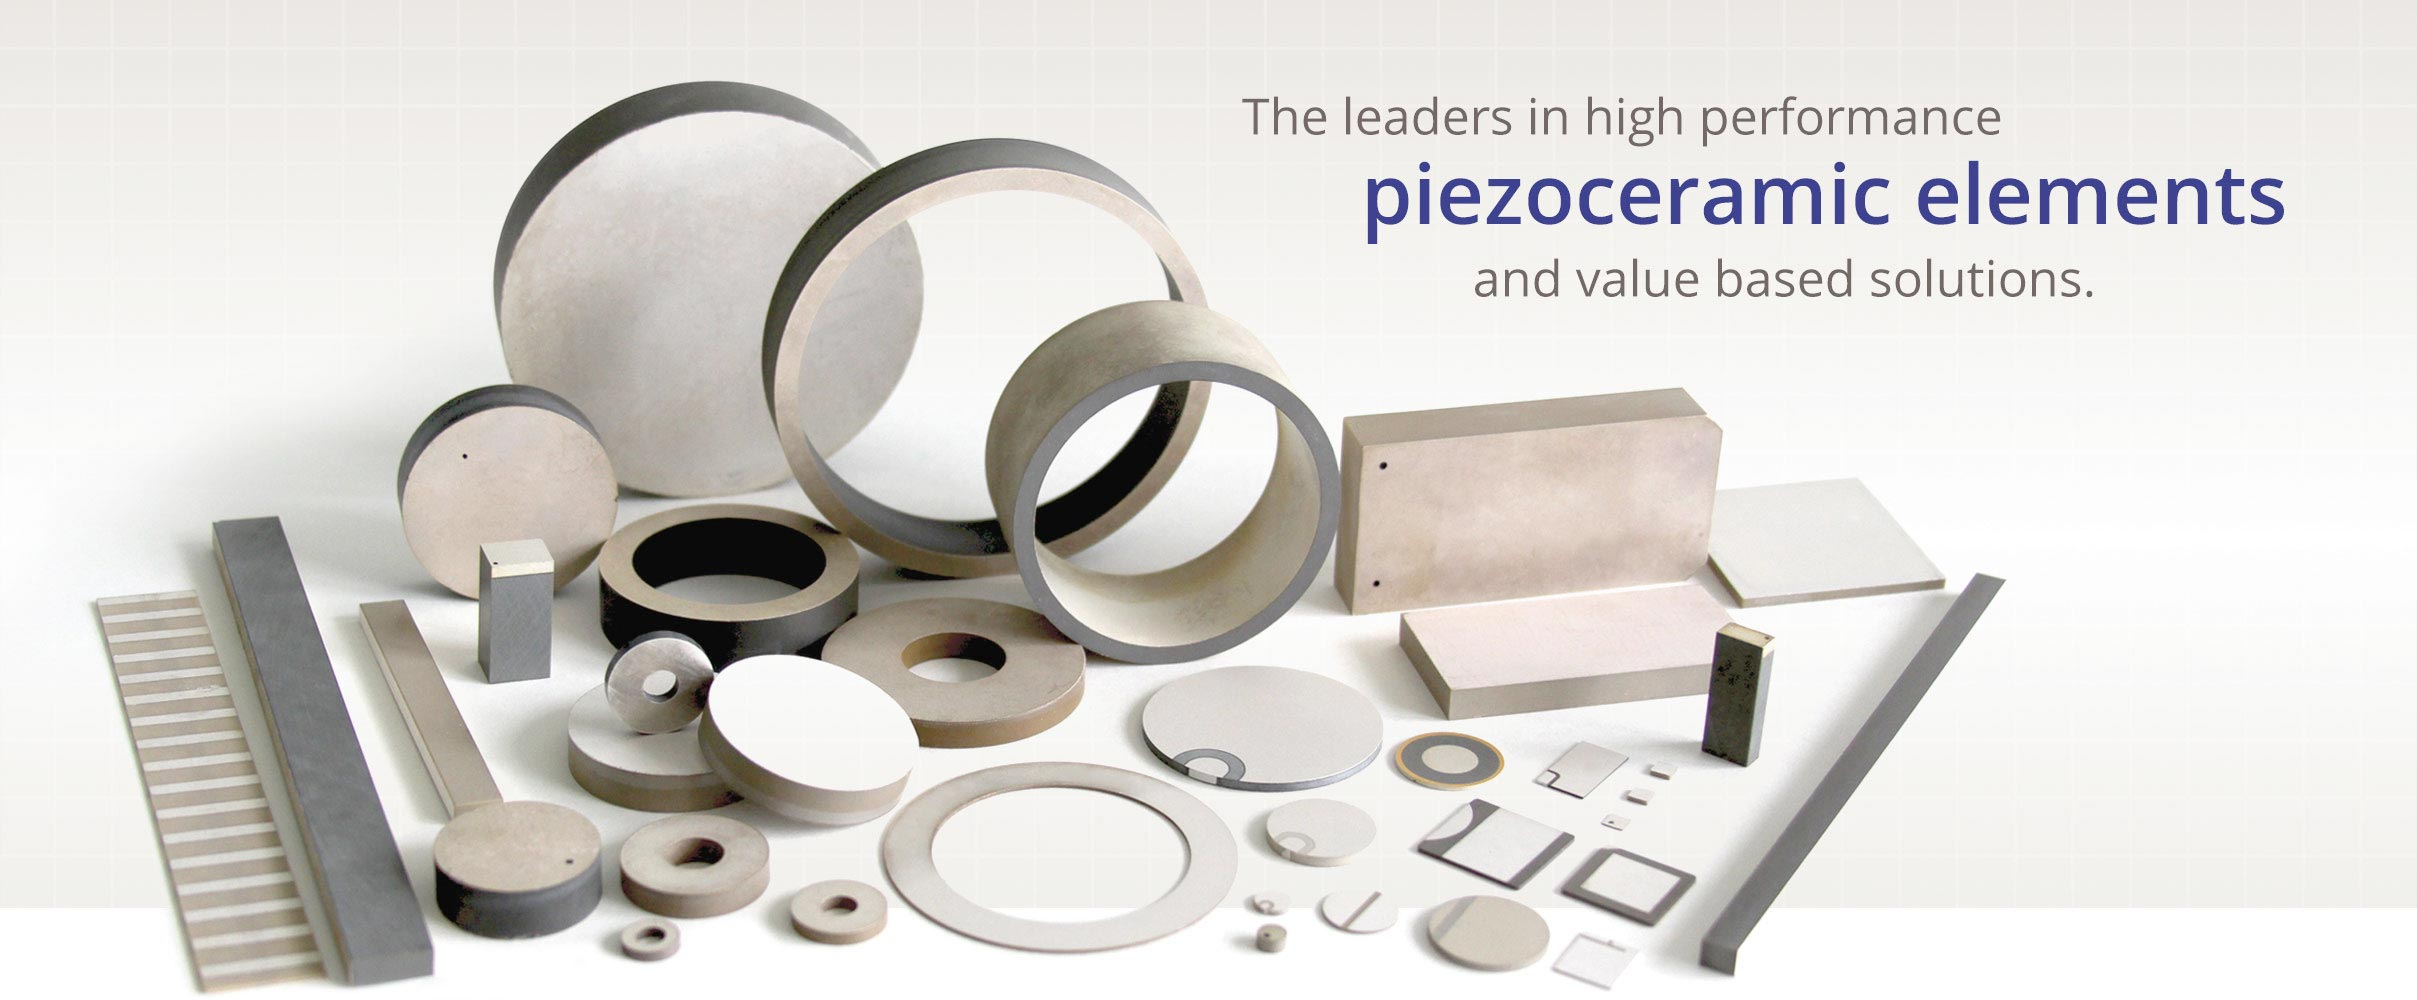 the leaders in piezoceramic elements